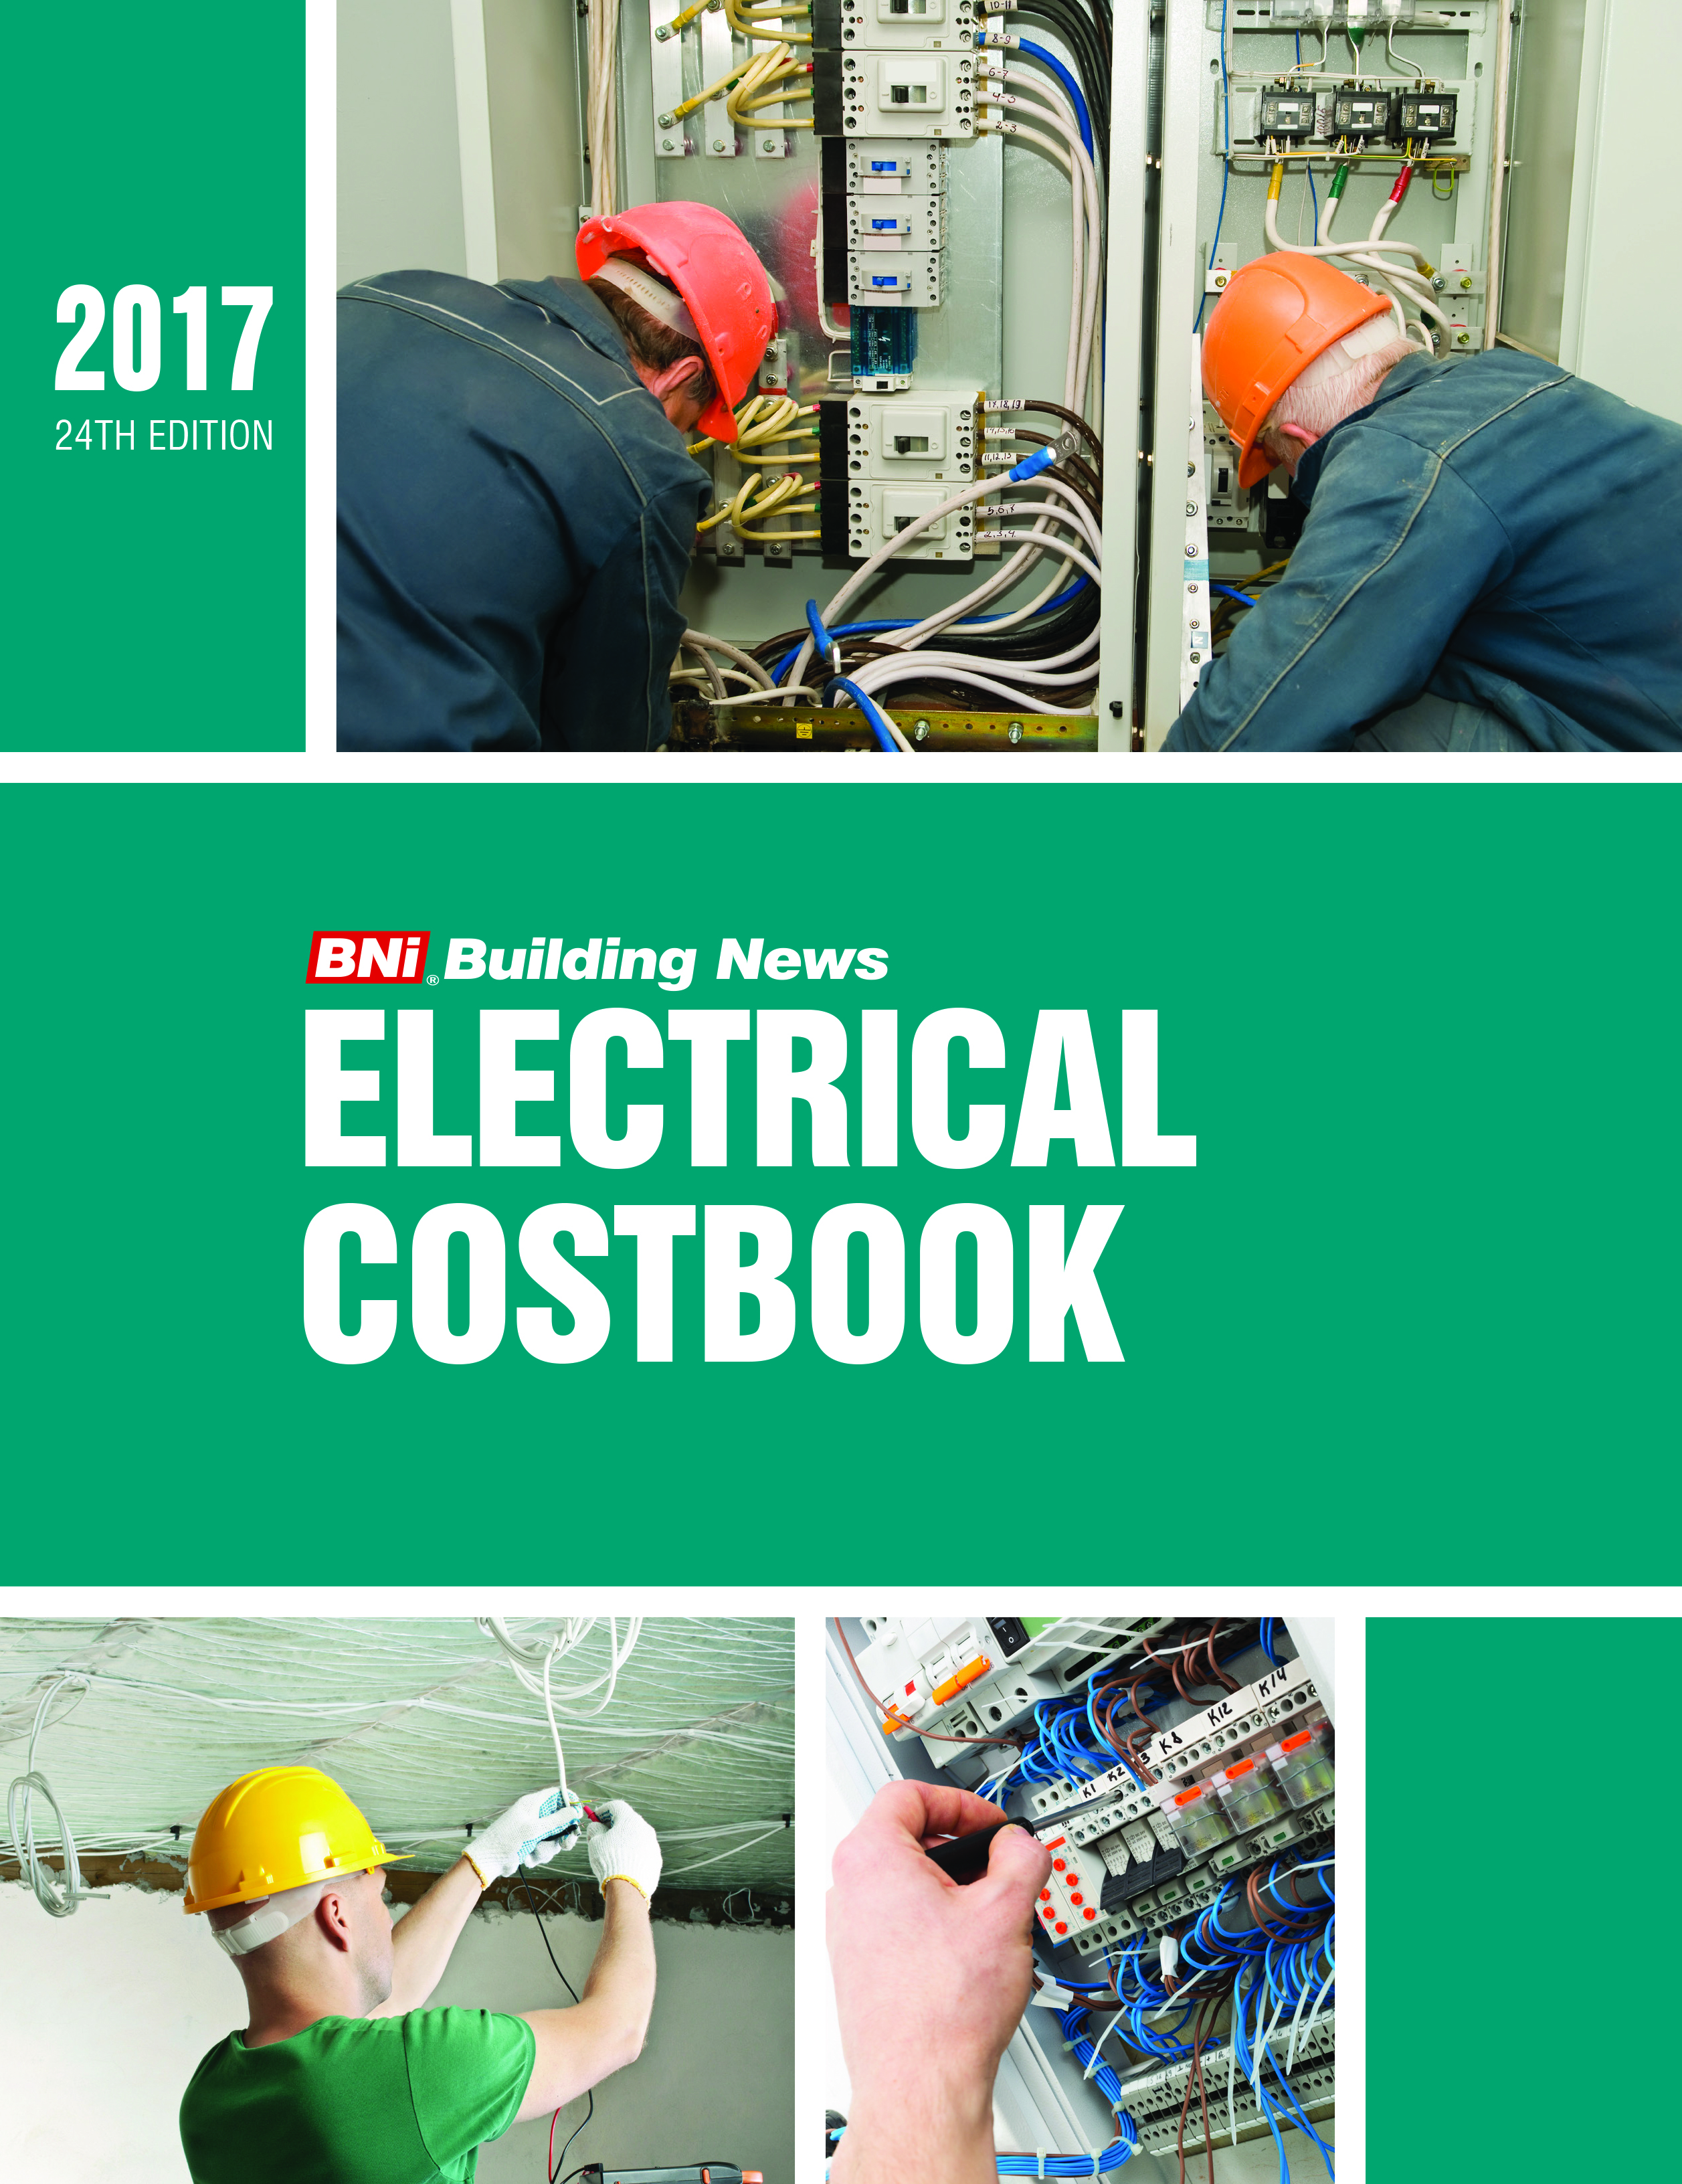 BNI Electrical Costbook 2017